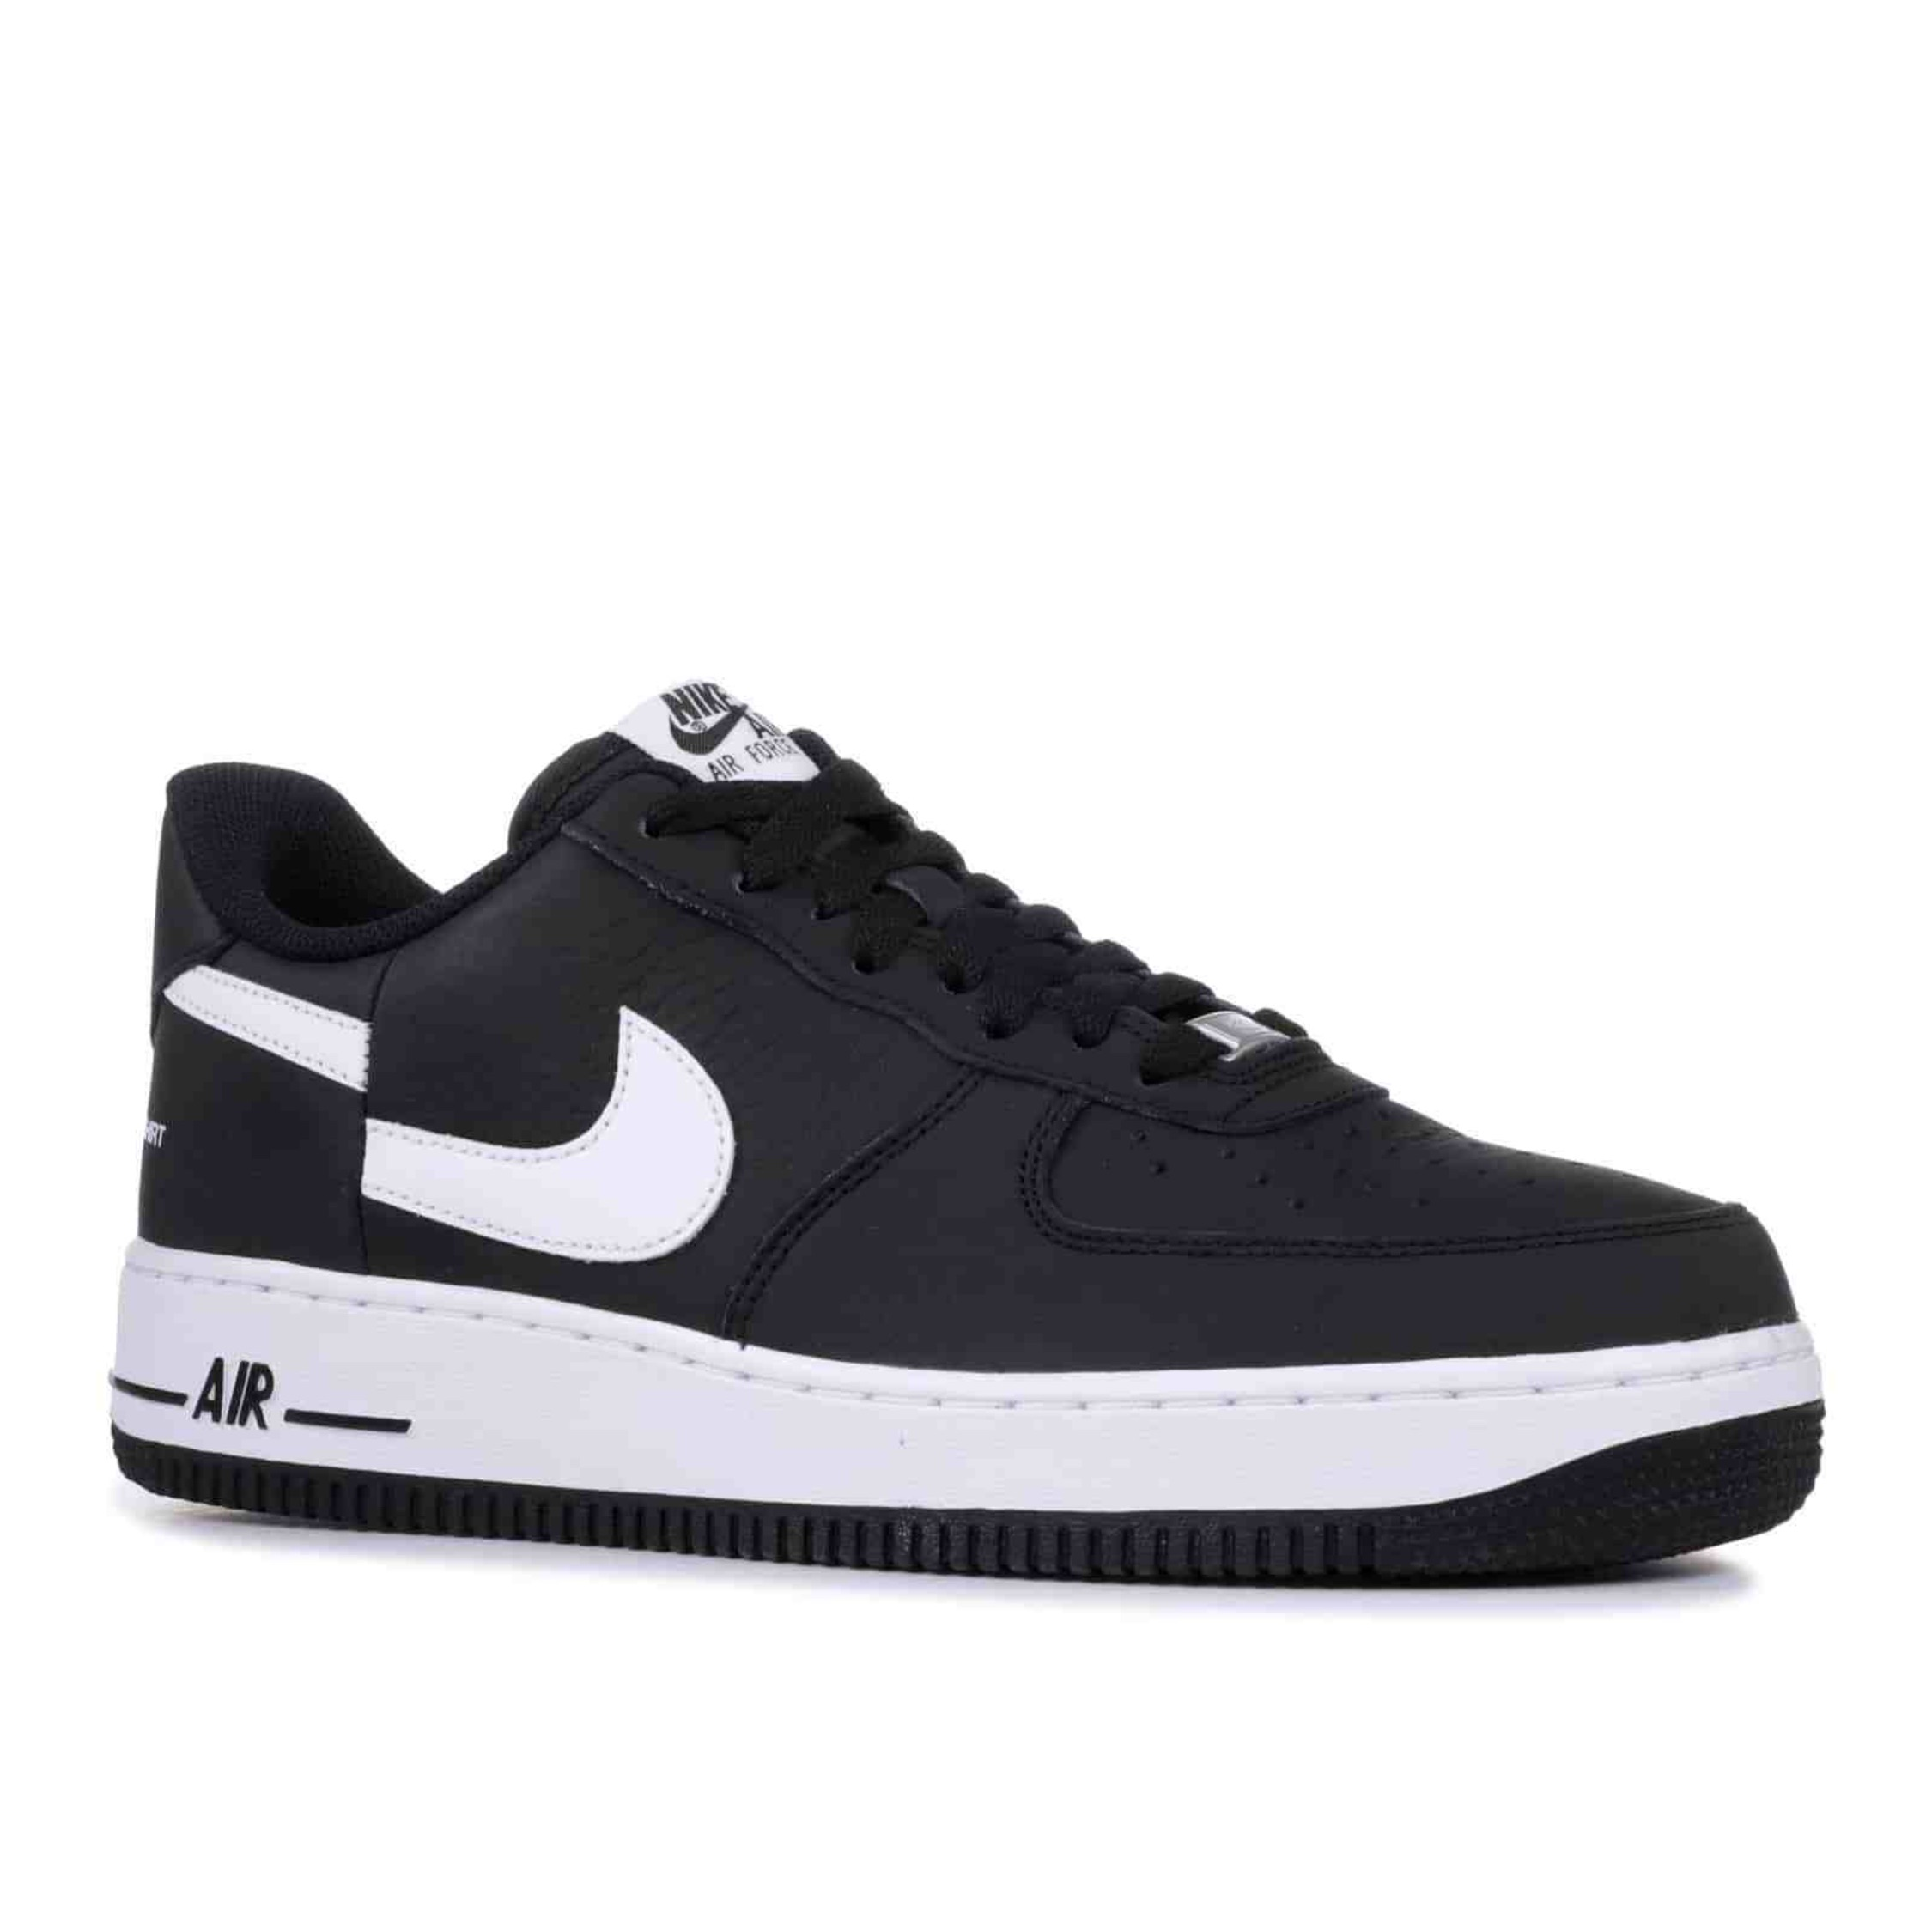 Black Supreme Force Air Cdg Nike White Low Af1 1 nvm08wN